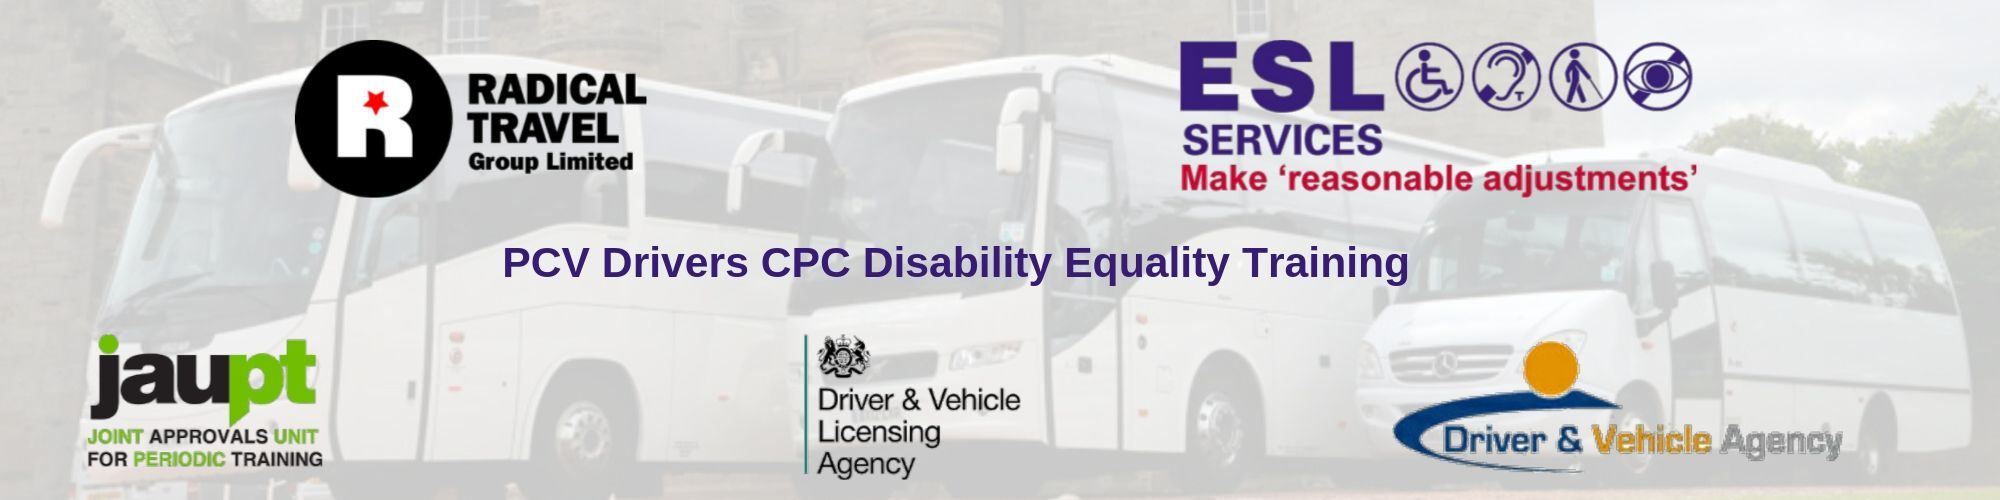 PCV Drivers CPC Disability Equality Training Course